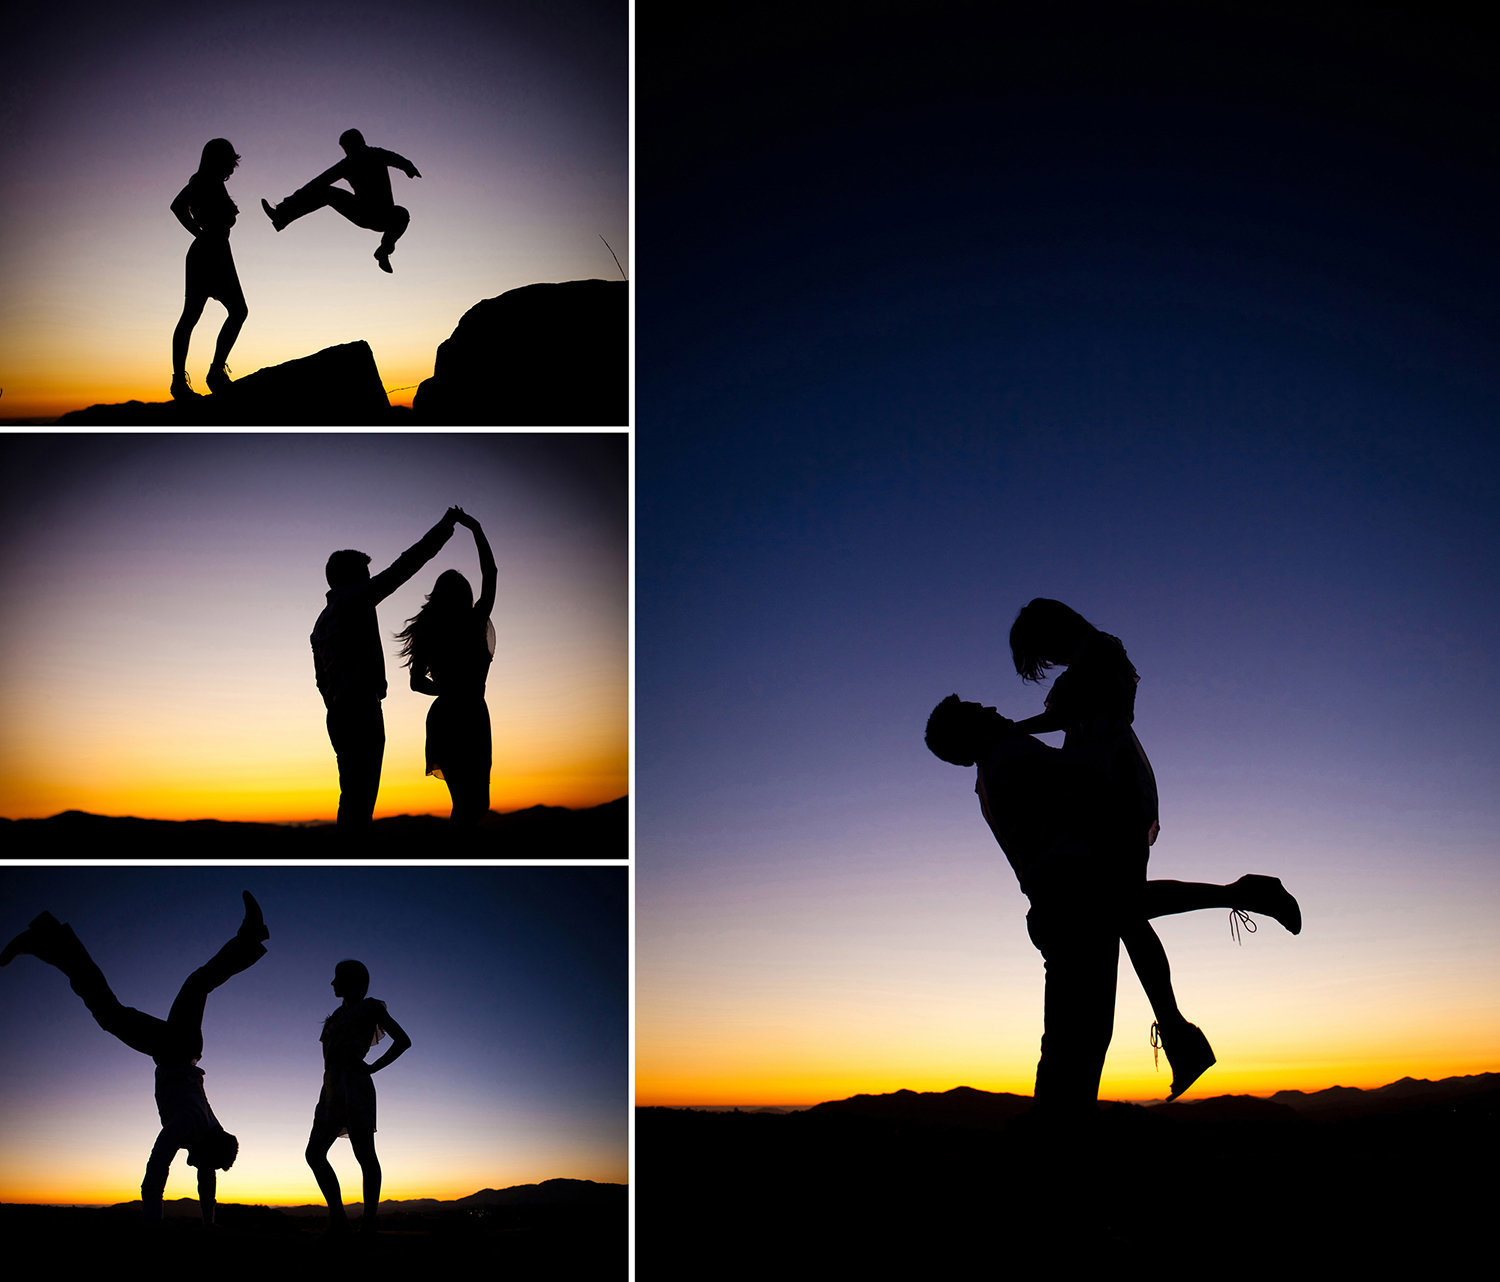 De Mar engagement photos beautiful sunset silhouette